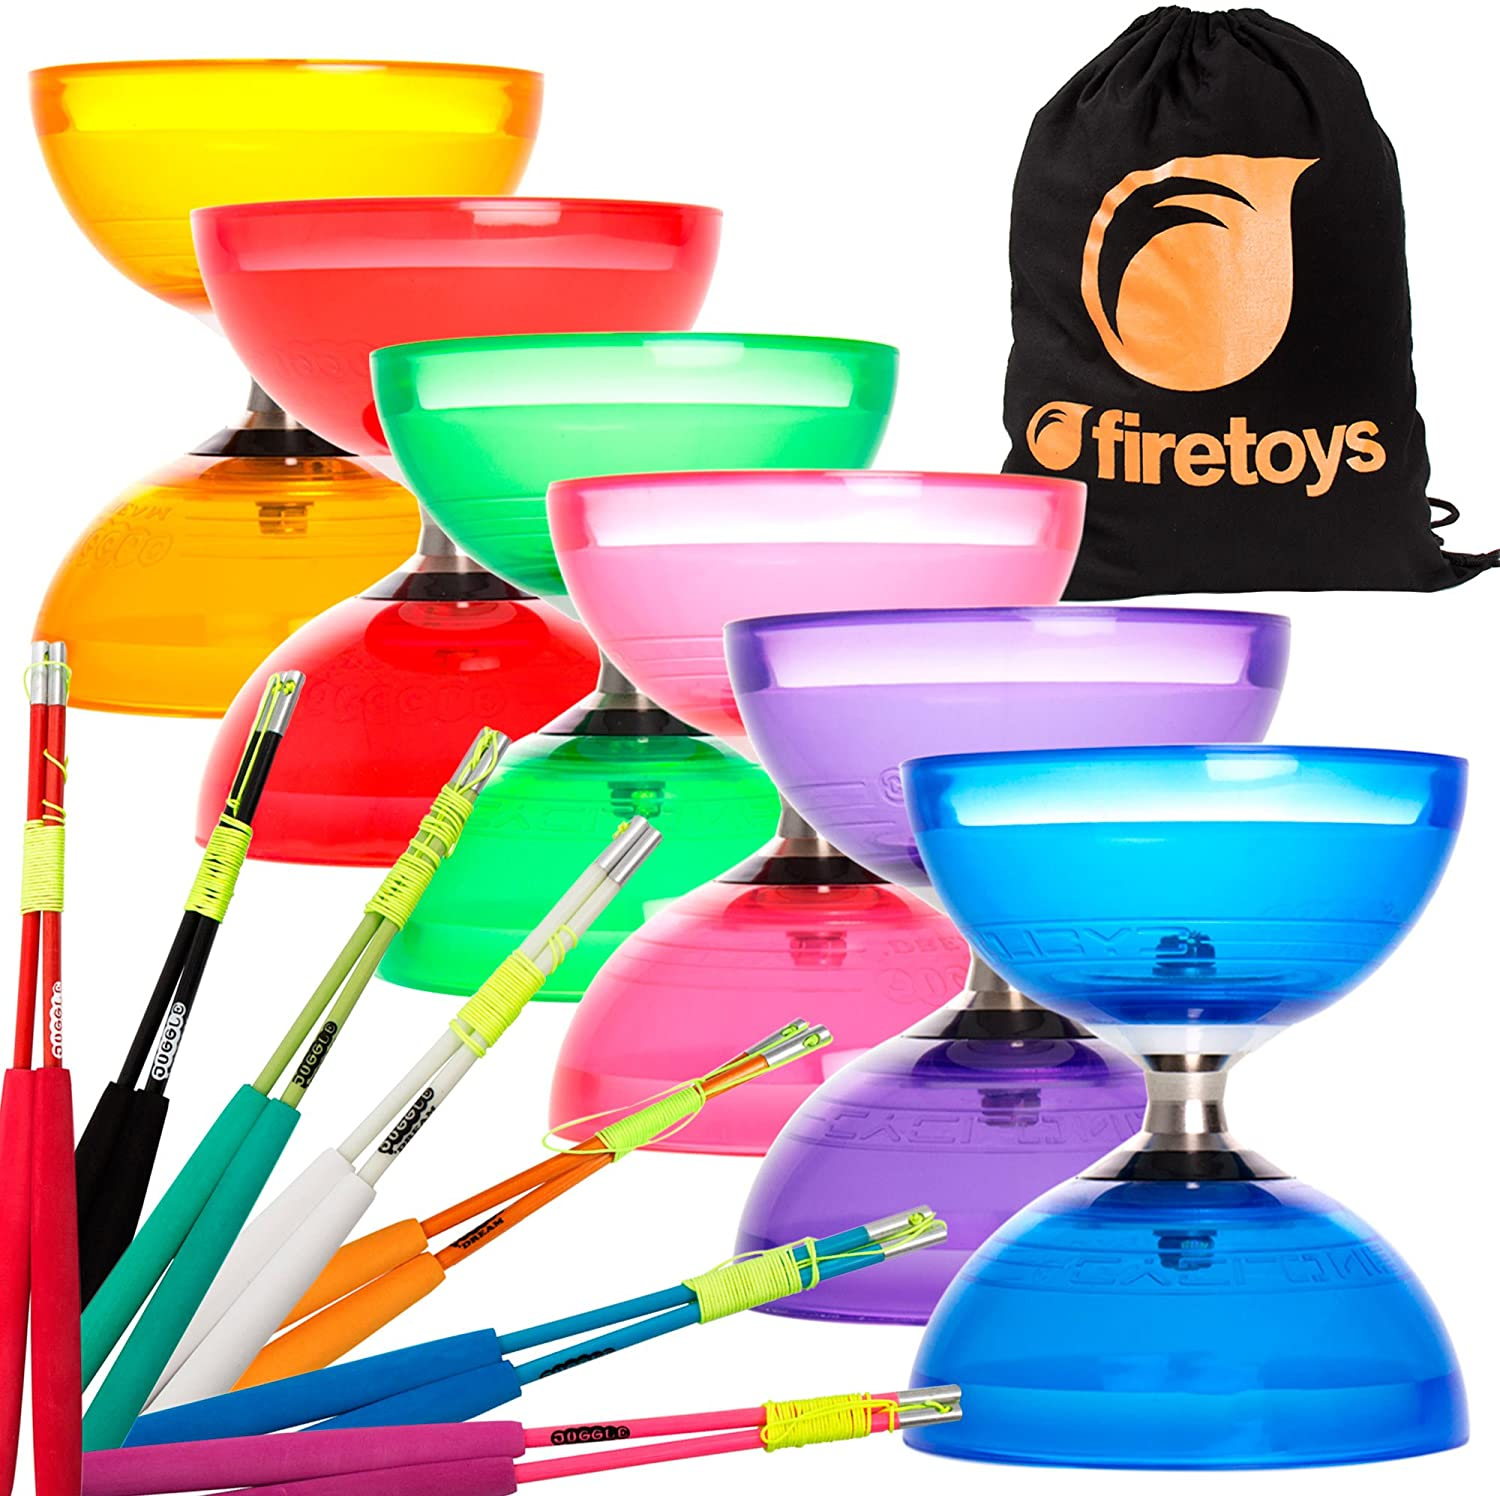 Juggle Dream Cyclone Quartz 2 Triple Bearing Diabolo & Superglass Diablo Sticks Set with Firetoys Bag